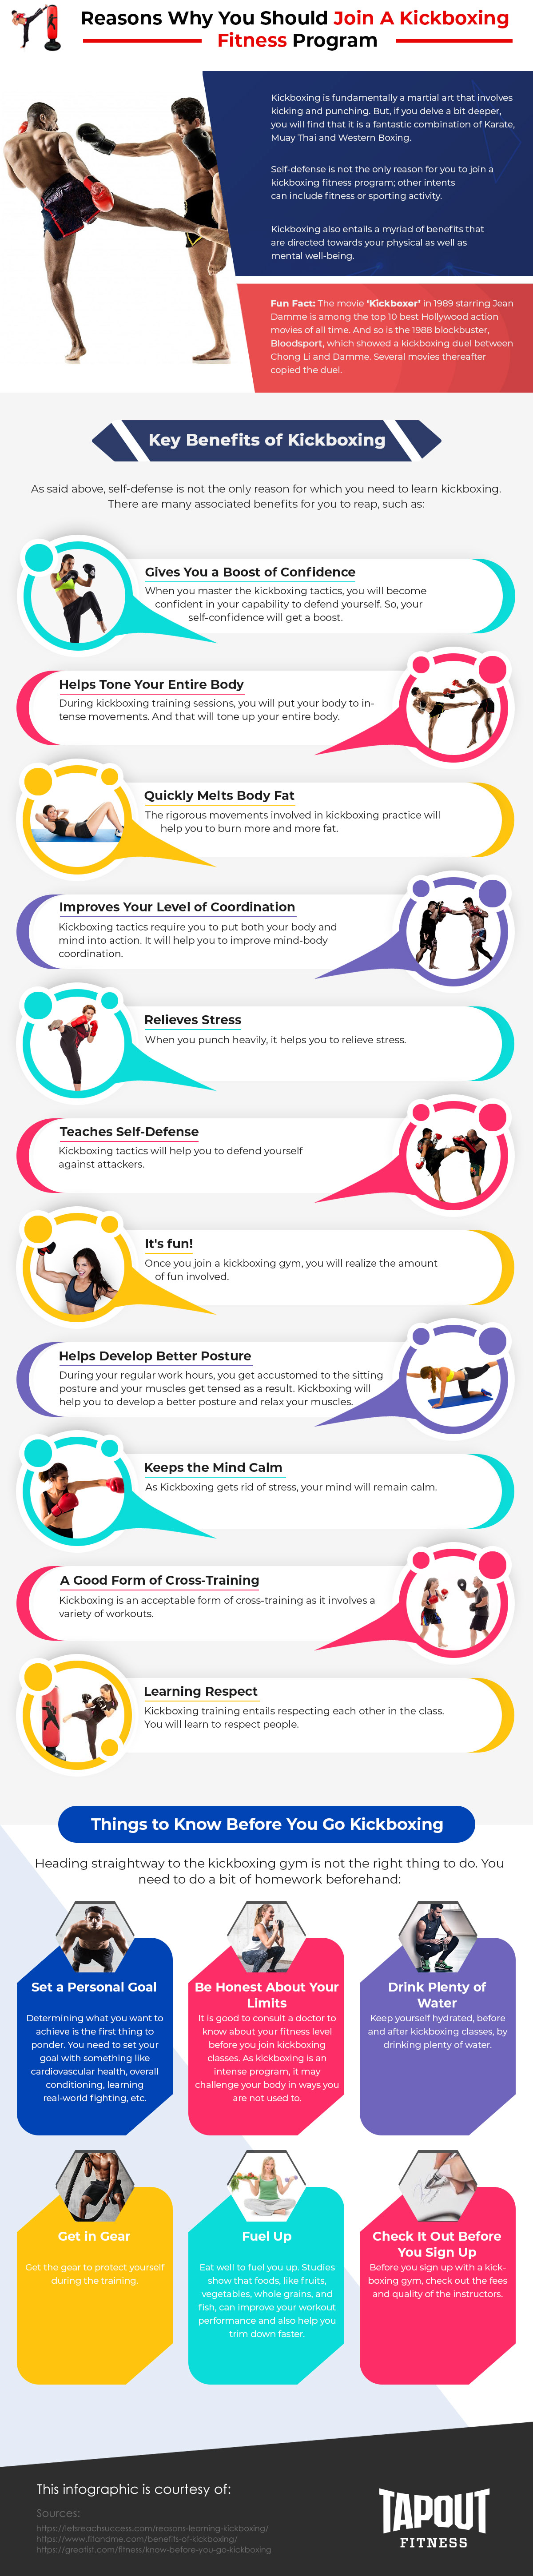 Reasons to Join Kickboxing Fitness Program - Infographic